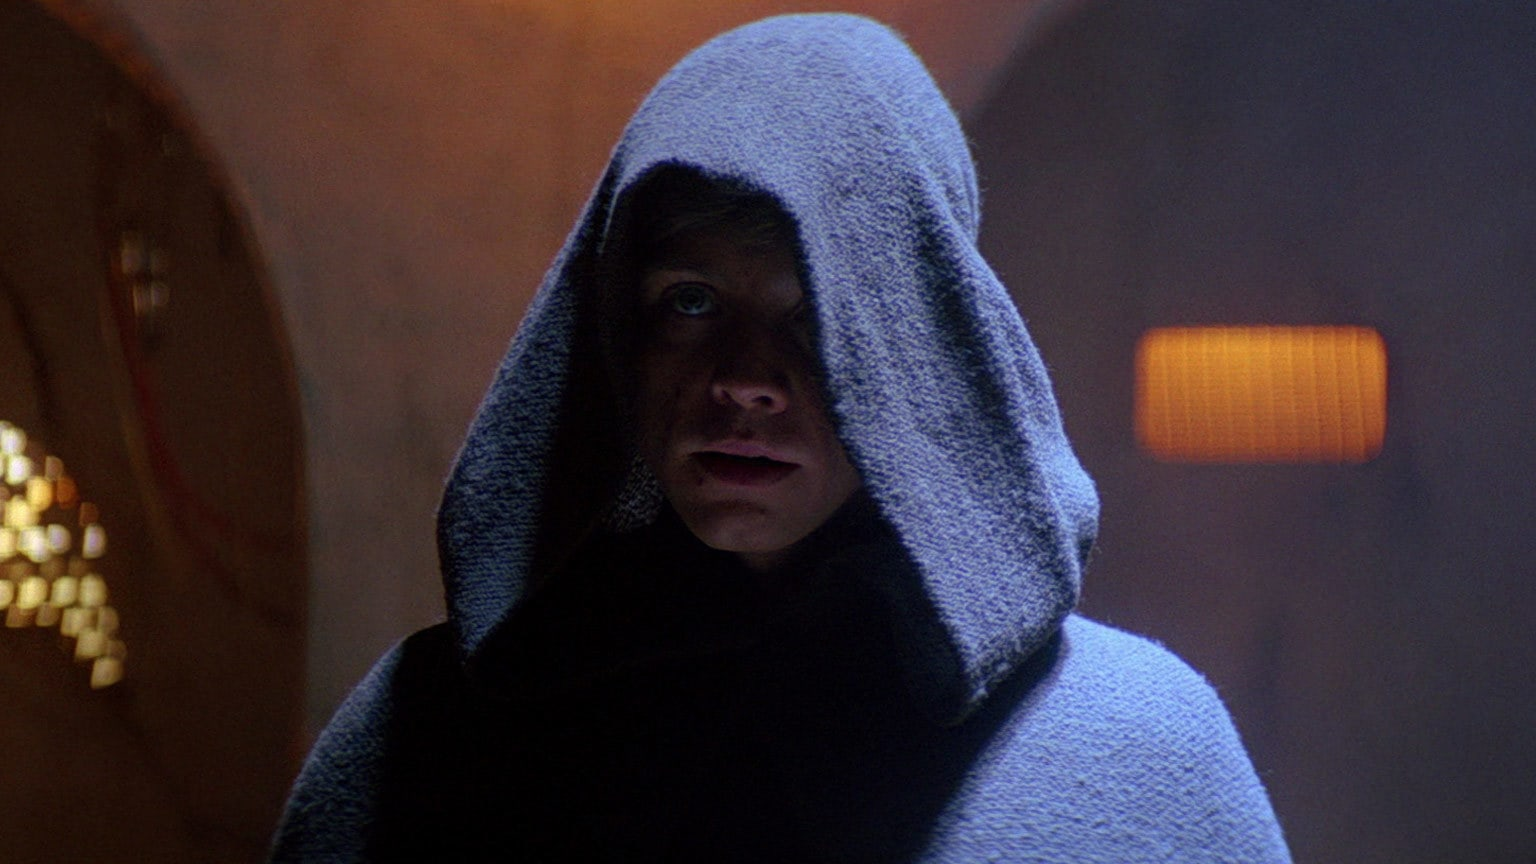 Quiz: Which Member of the Skywalker Family Are You?